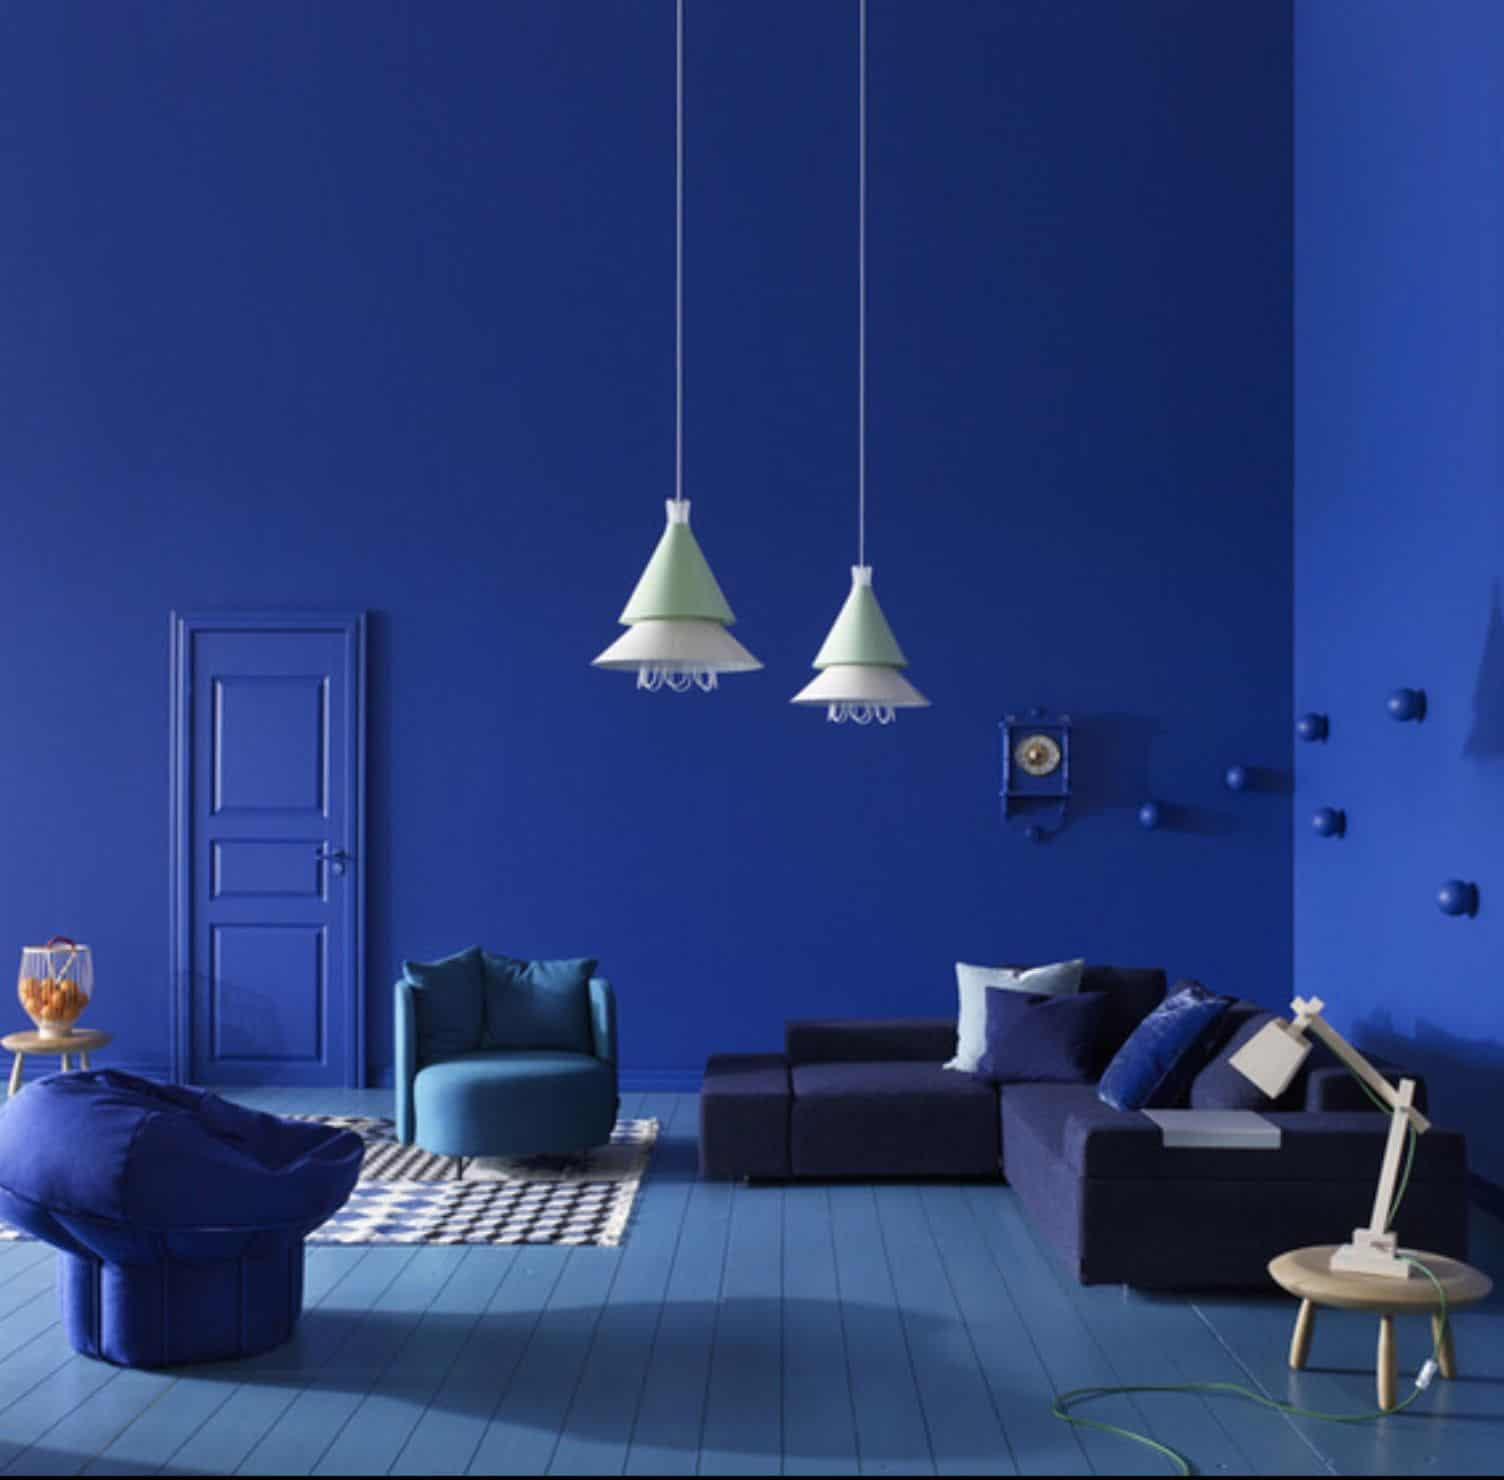 cobalt blue in the room